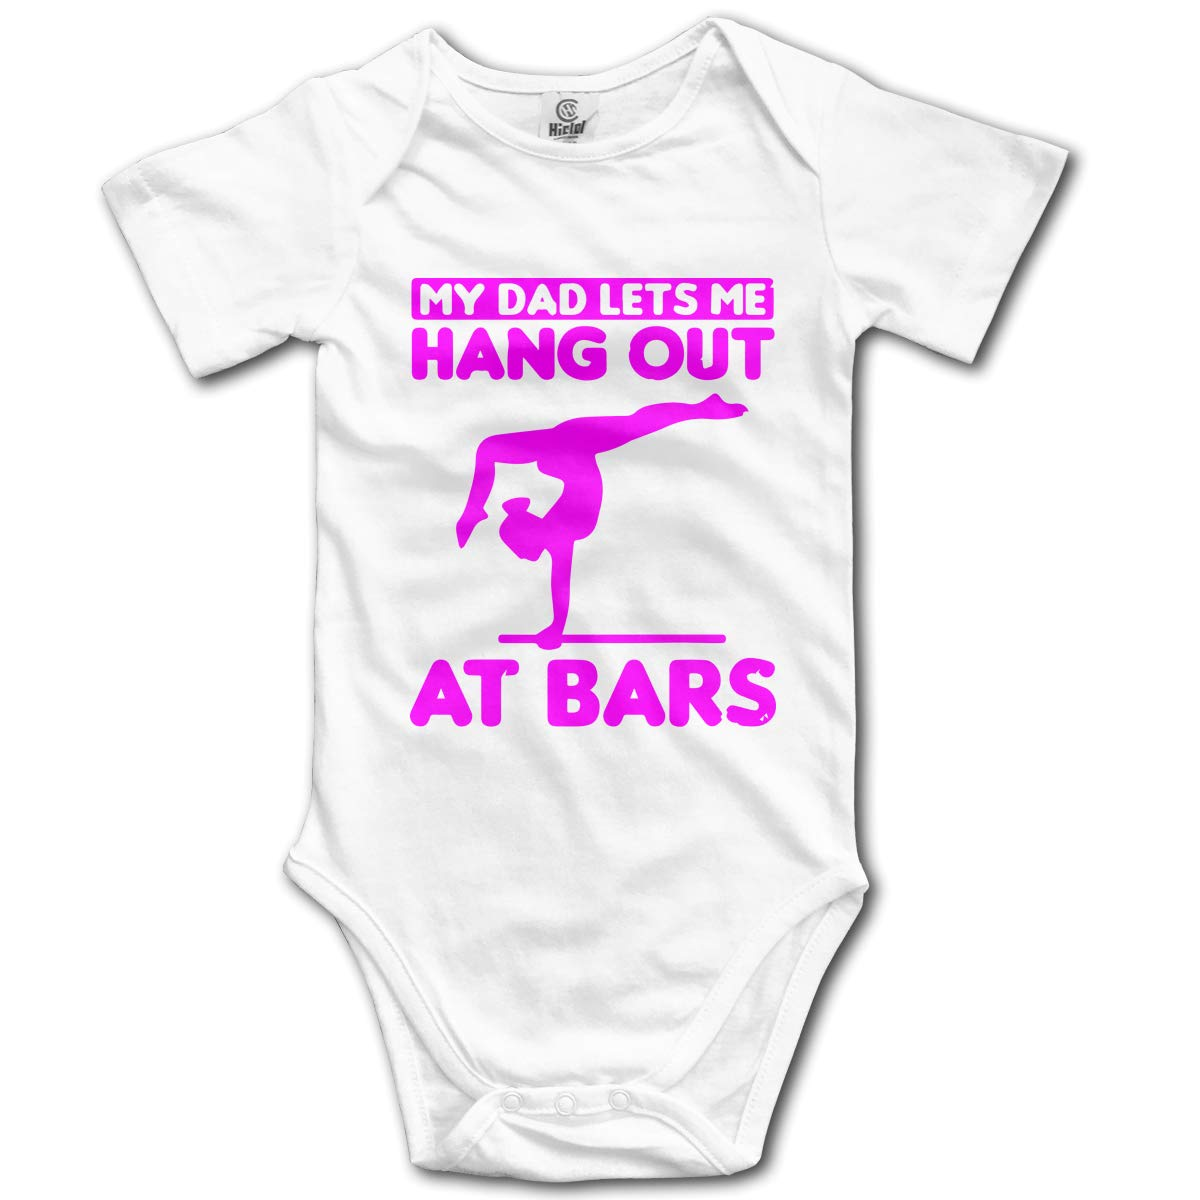 Lets Me Hang Out at Bars Infant Baby Boys Girls Short Sleeve Romper Pajamas 0-24 Months